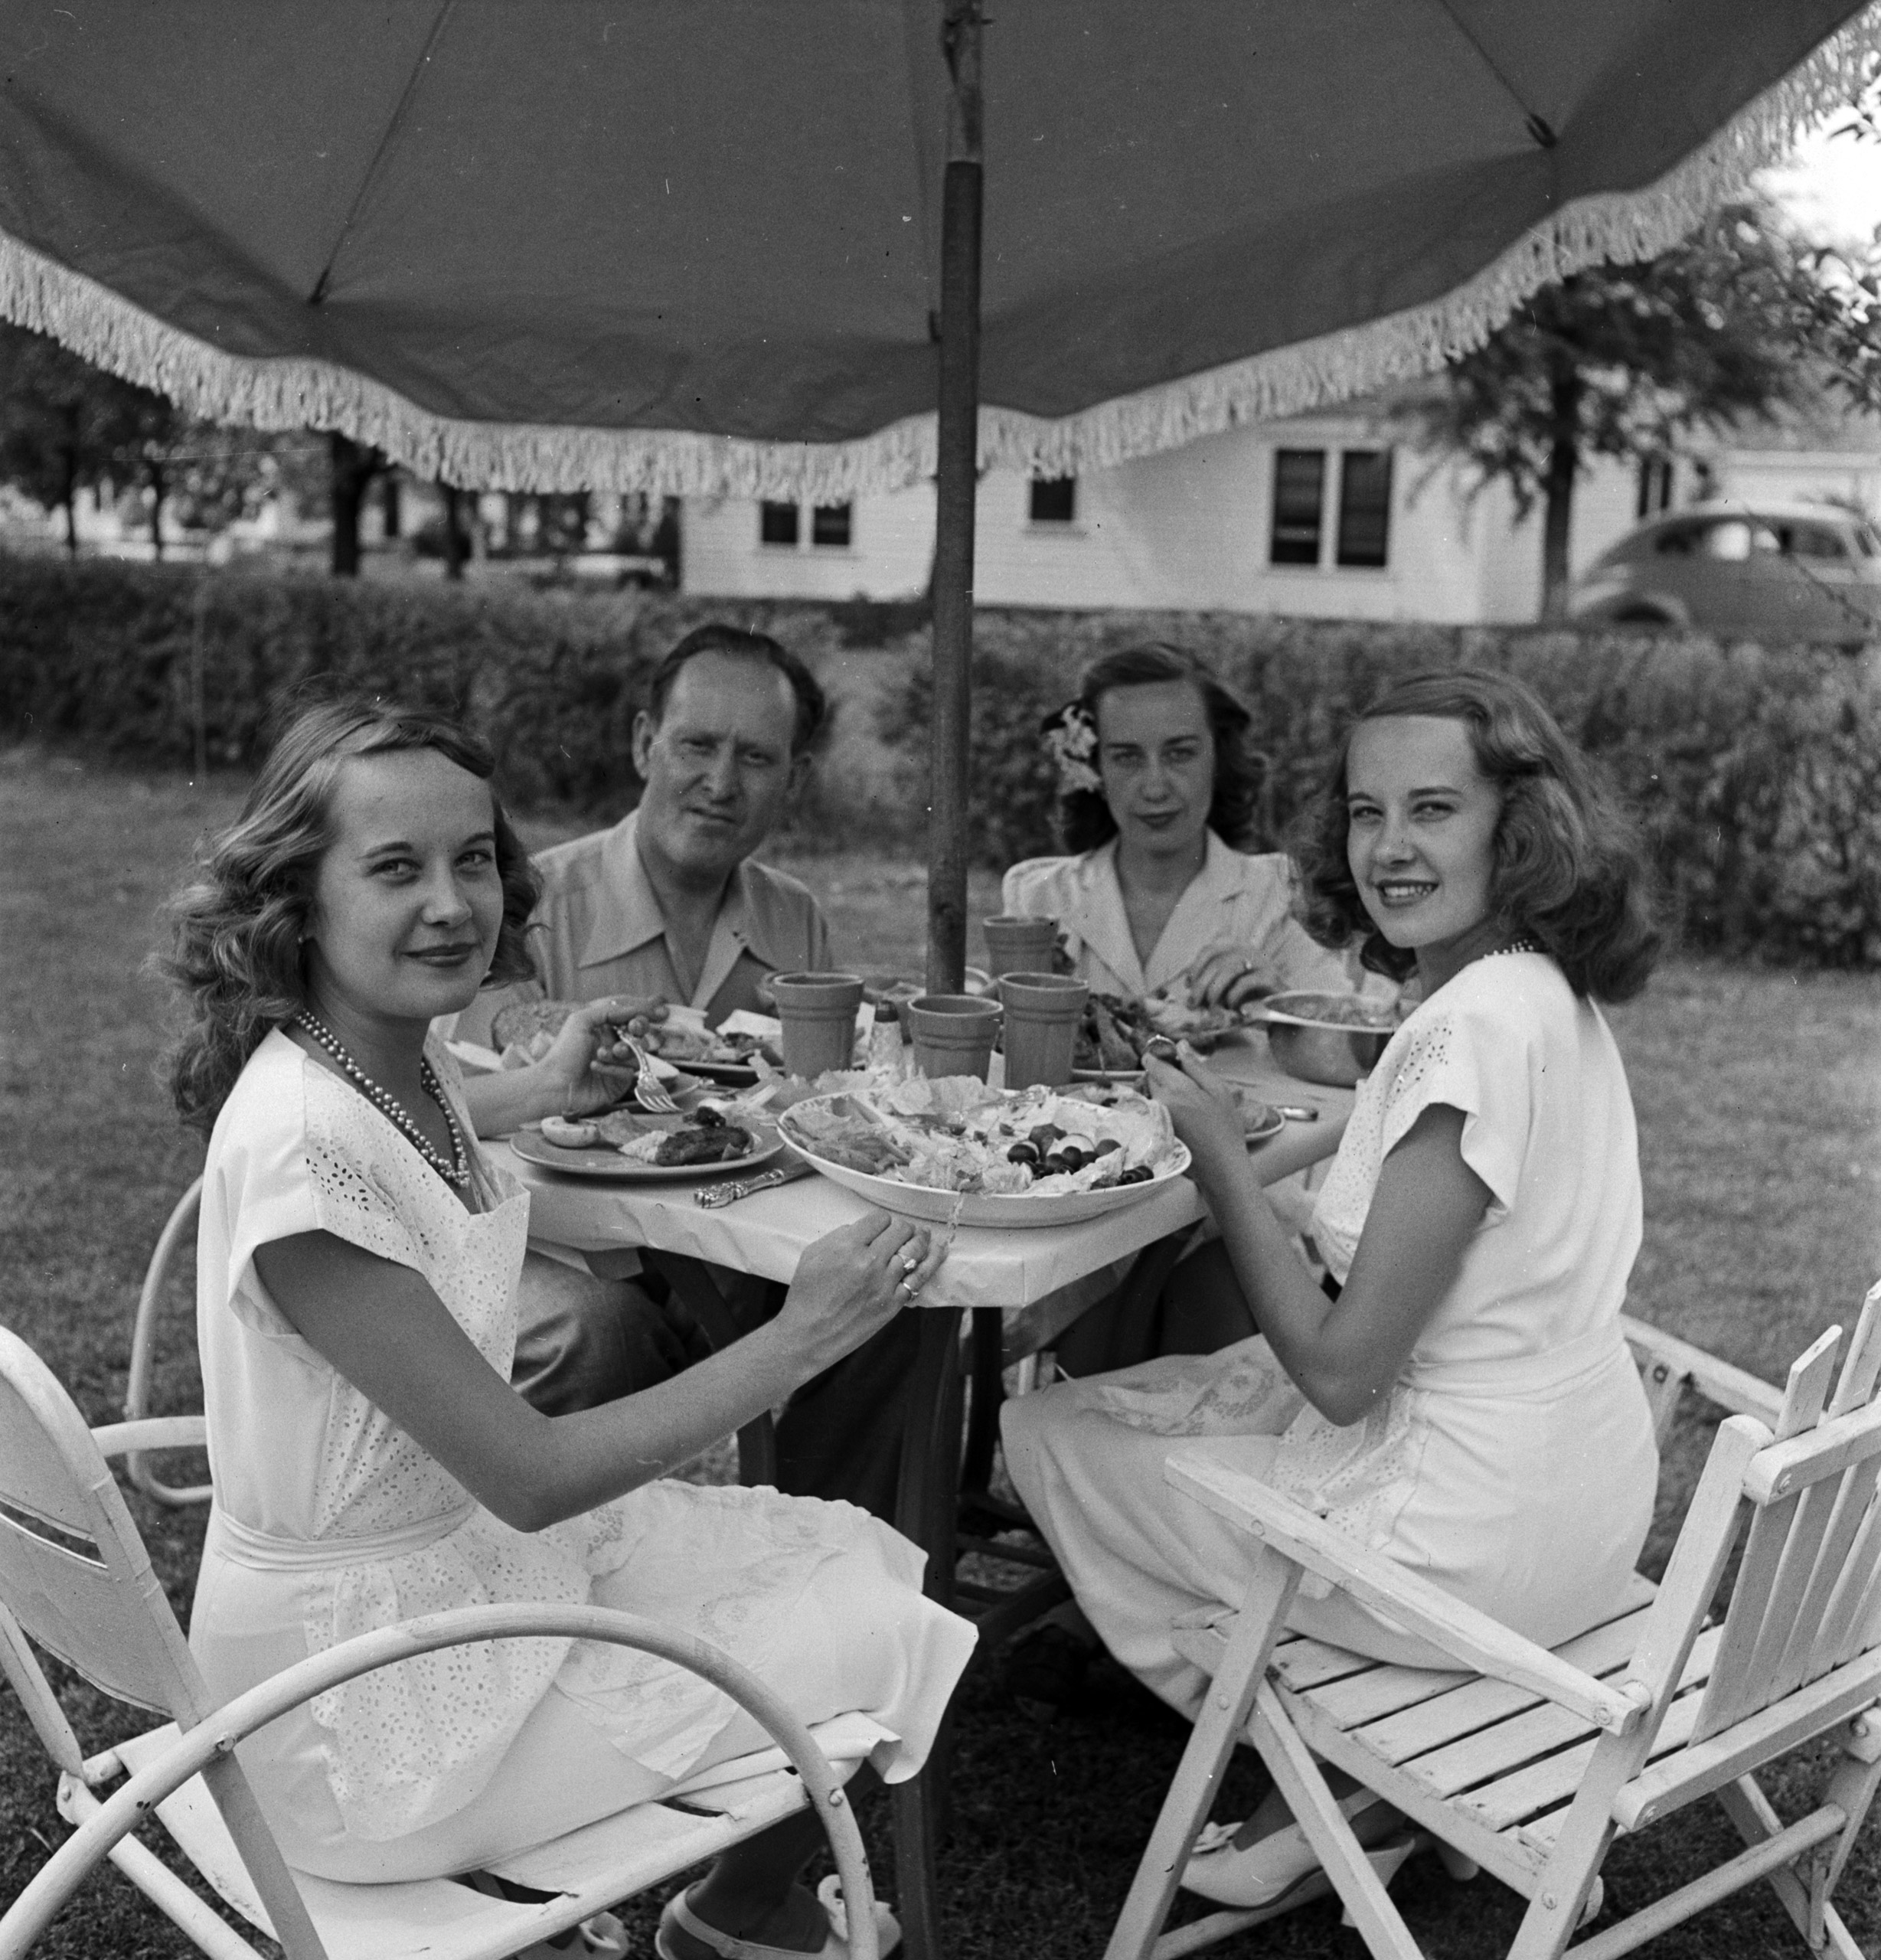 Identical twins Barbara and Betty Bounds eat al fresco with their parents in Tulsa, Okla.